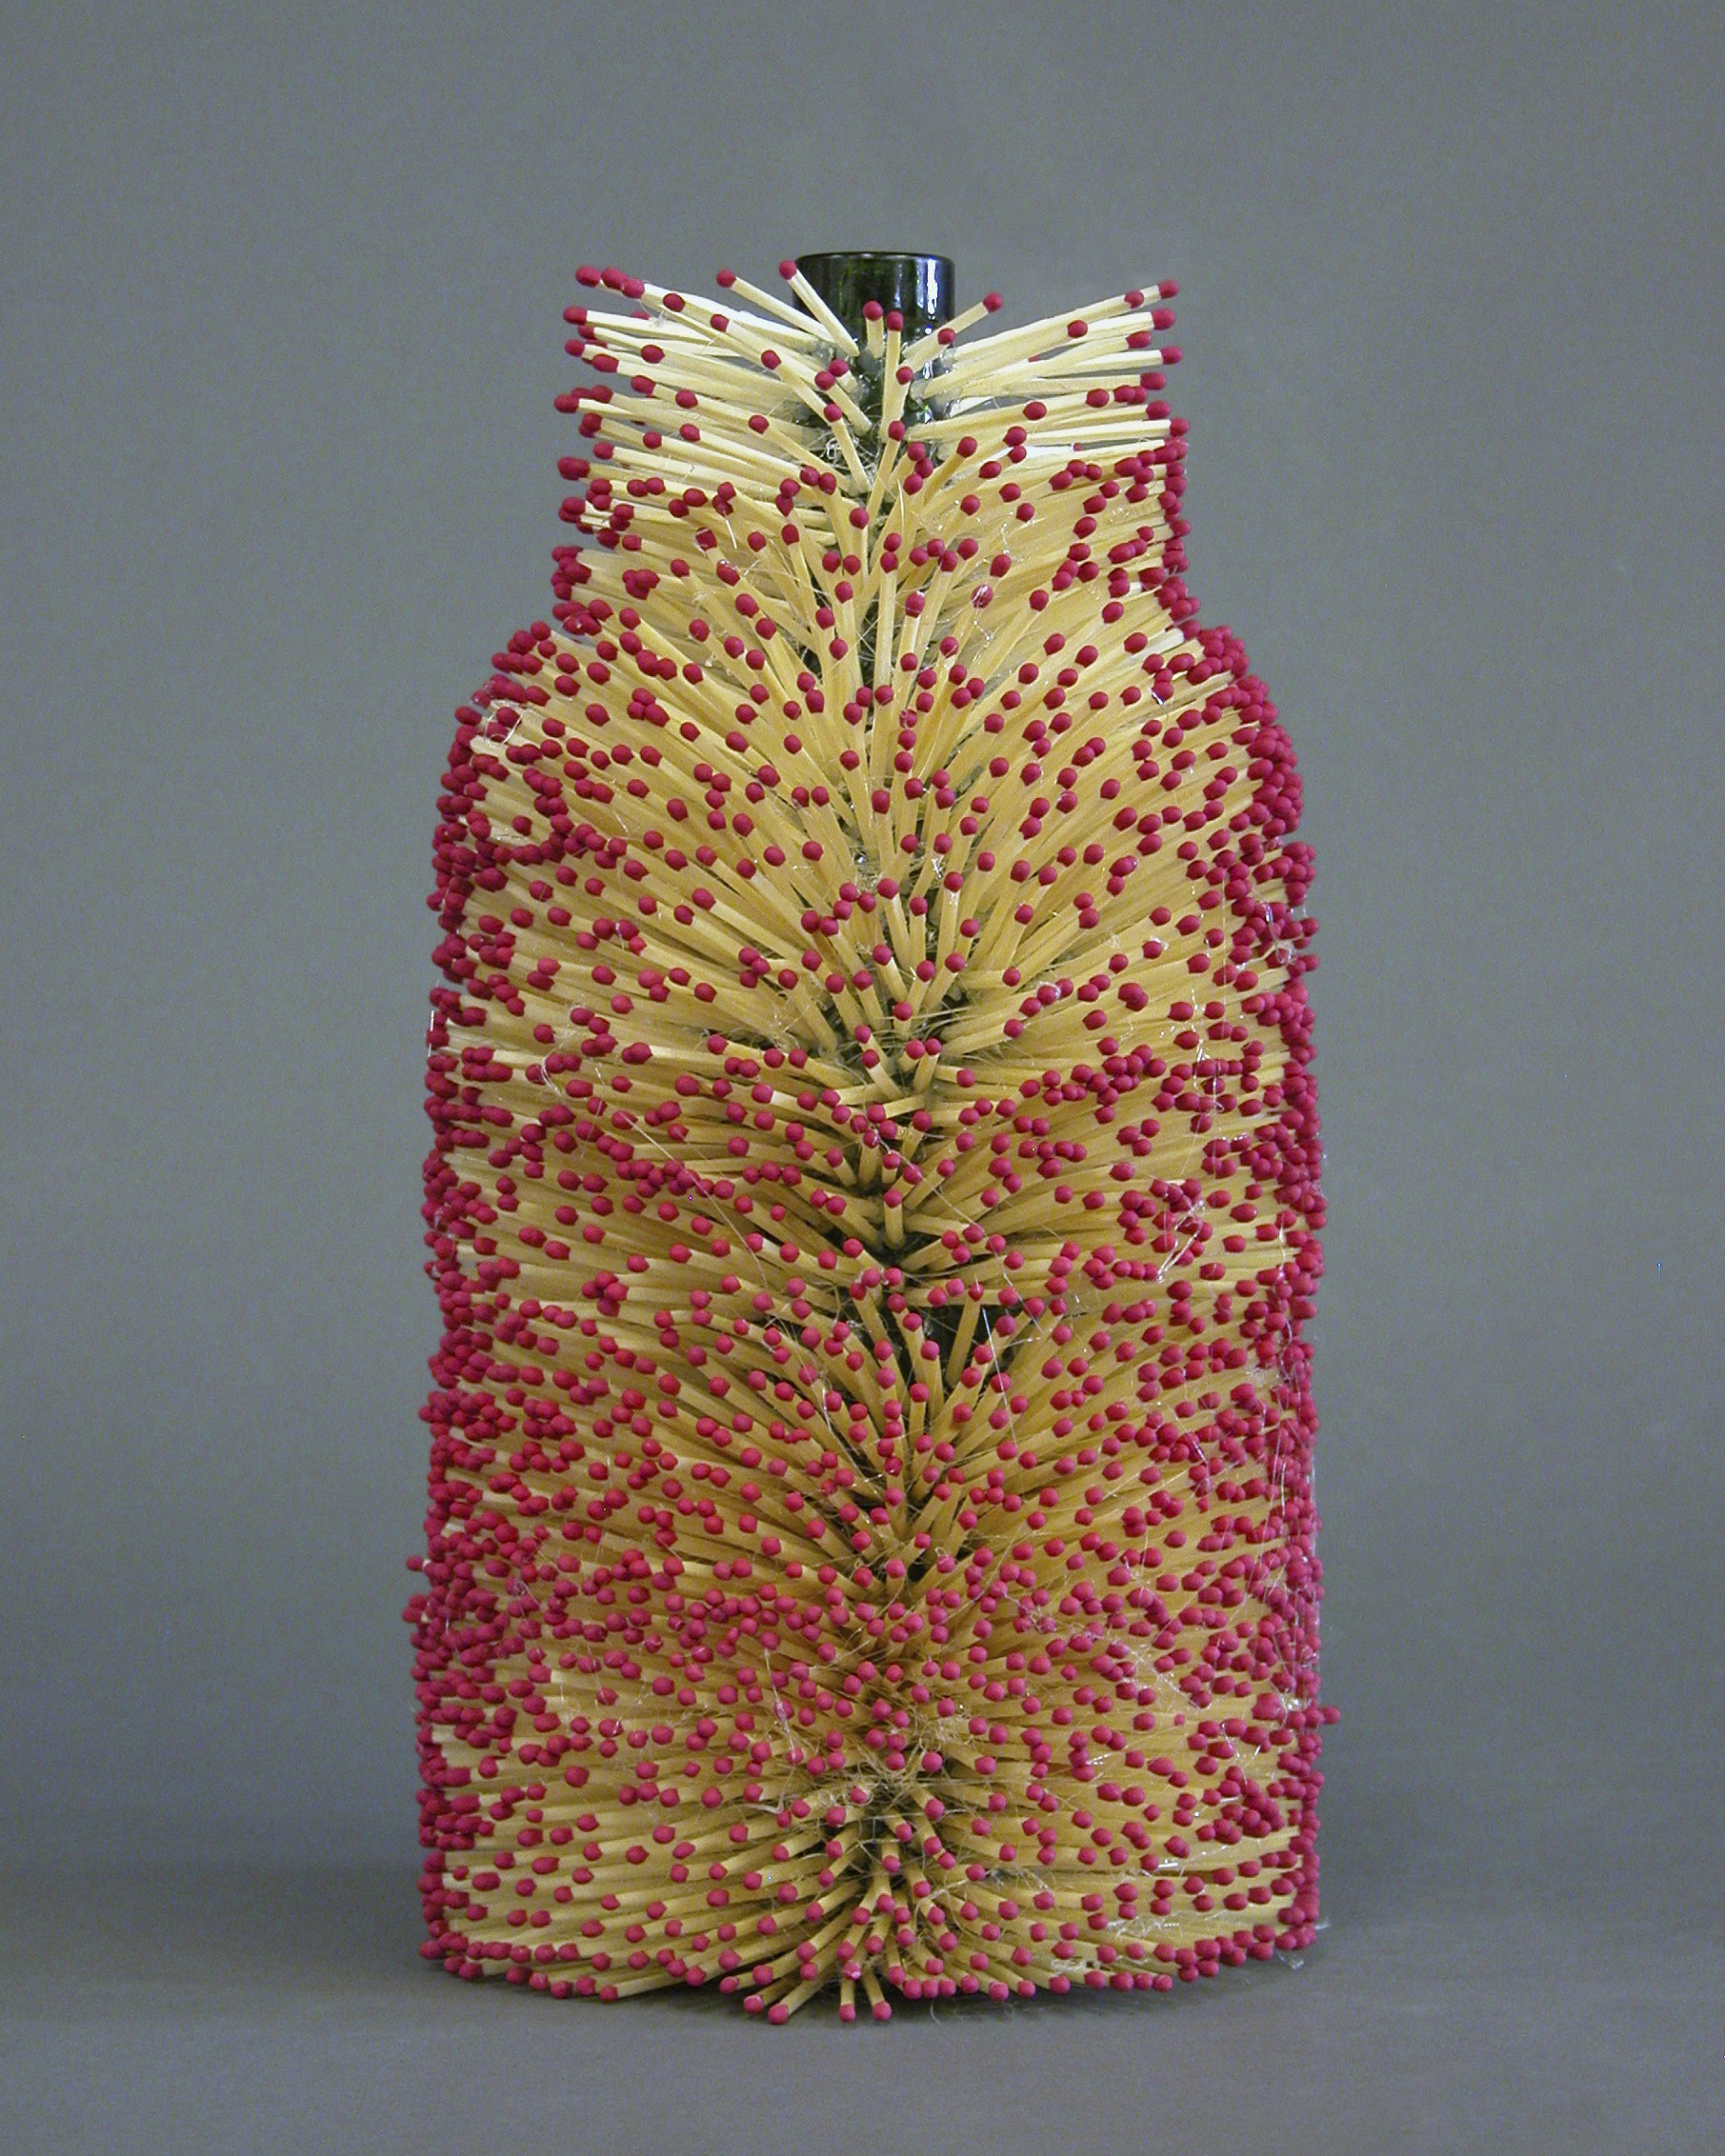 4. Wine Bottle with Matches